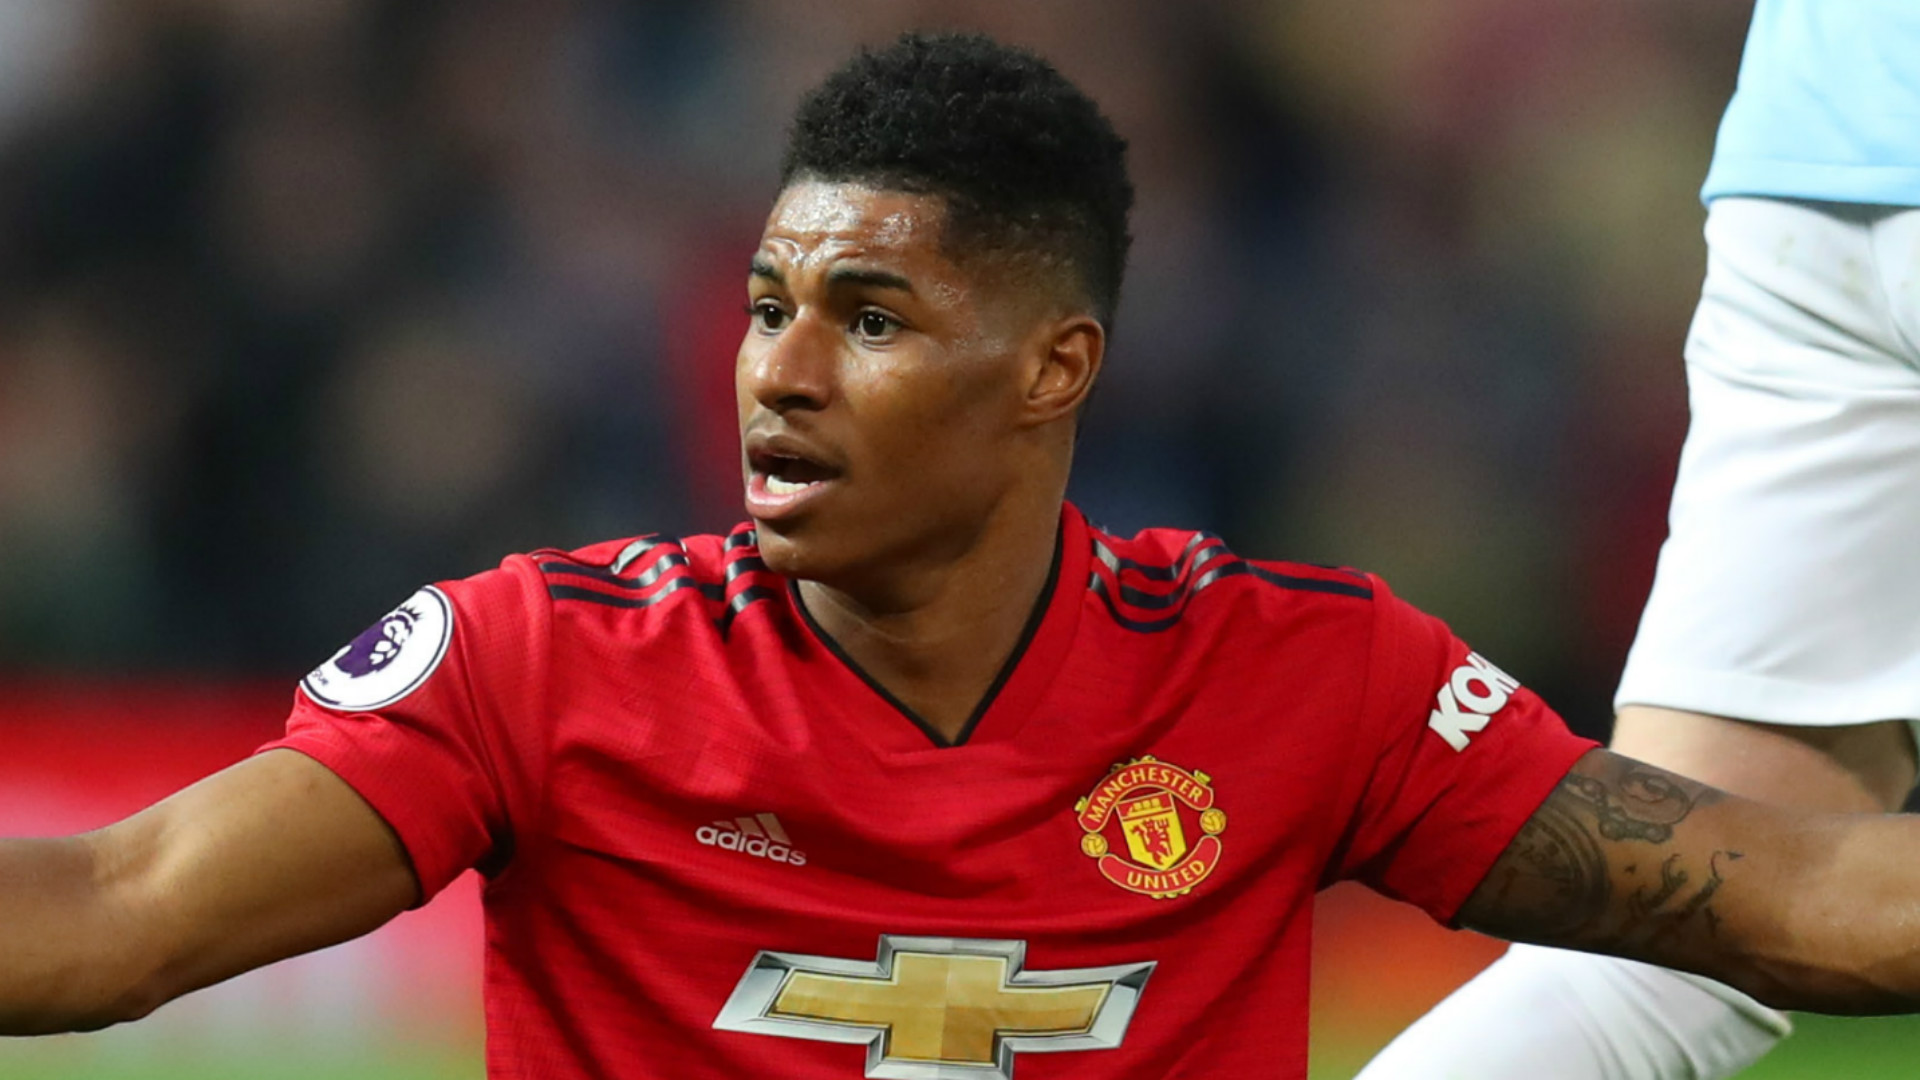 'Start playing like Manchester United', pleads Rashford